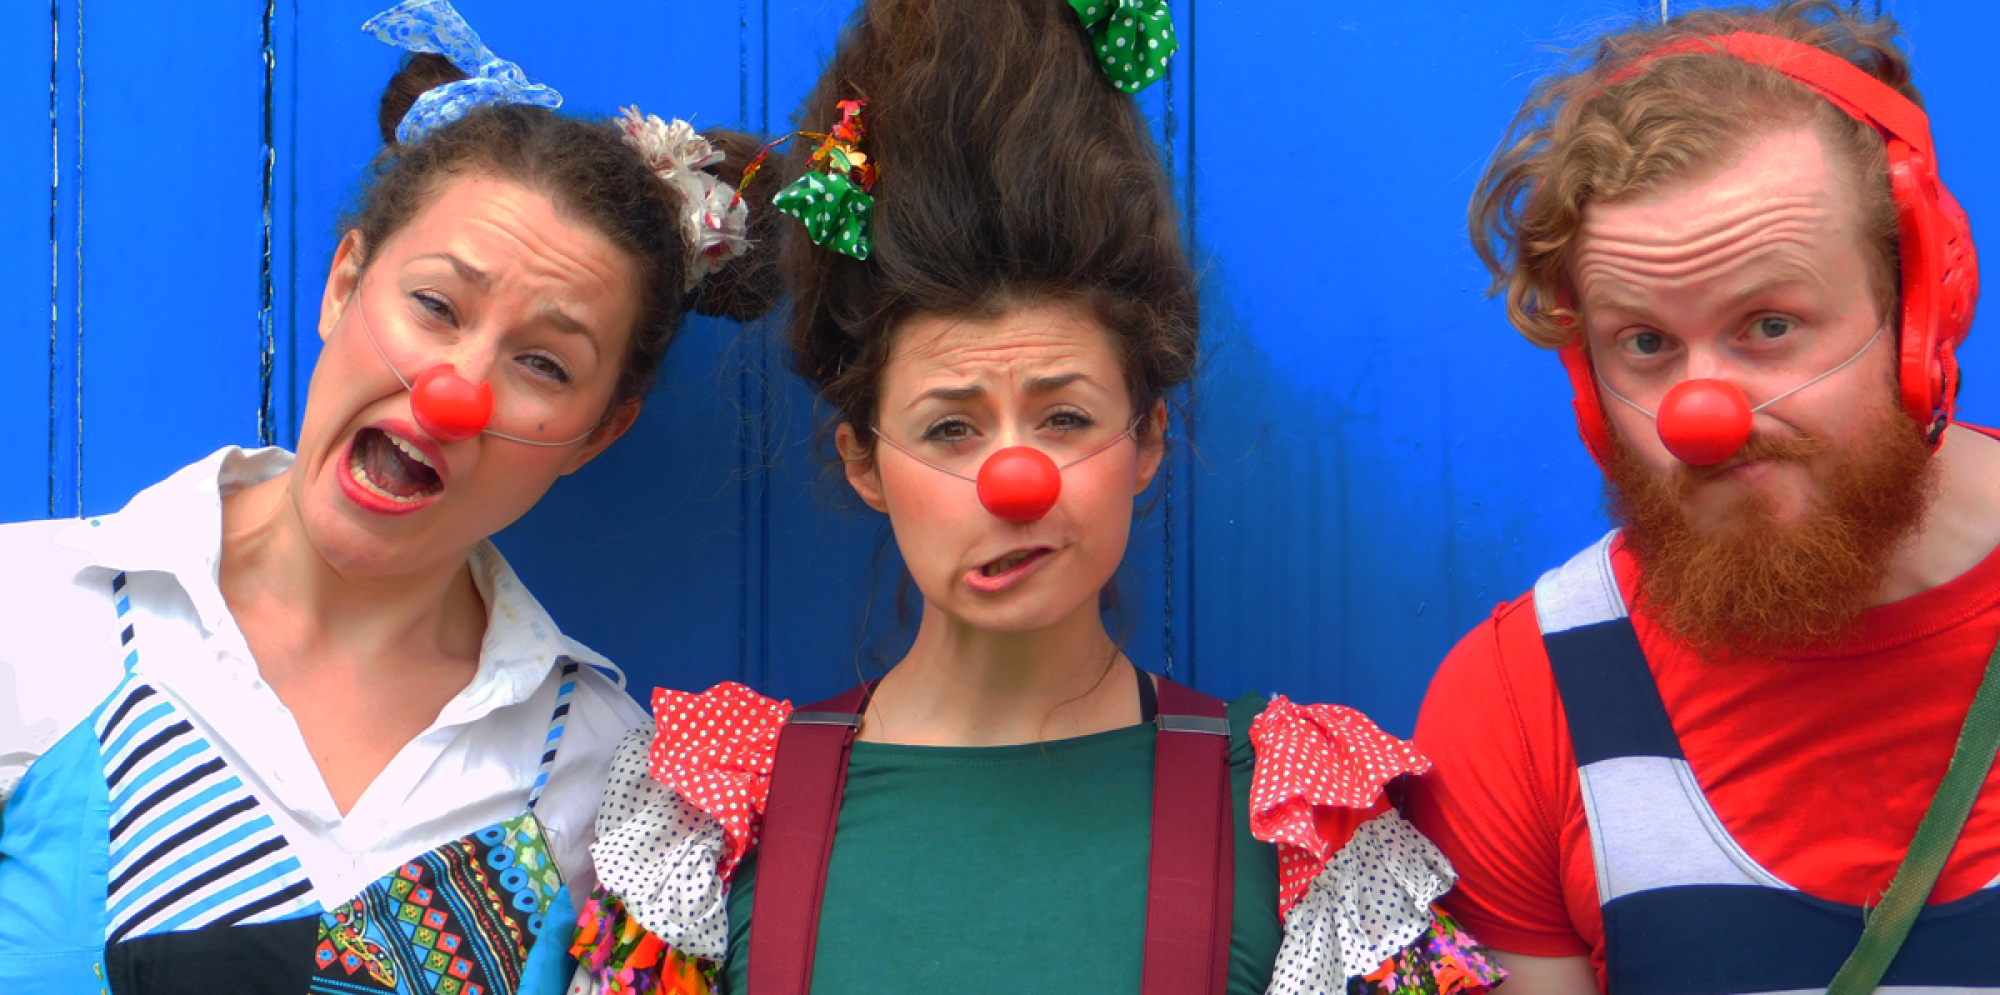 Better Together: three clowns with red noses and red cheeks standing in front of a blue door, pulling funny faces